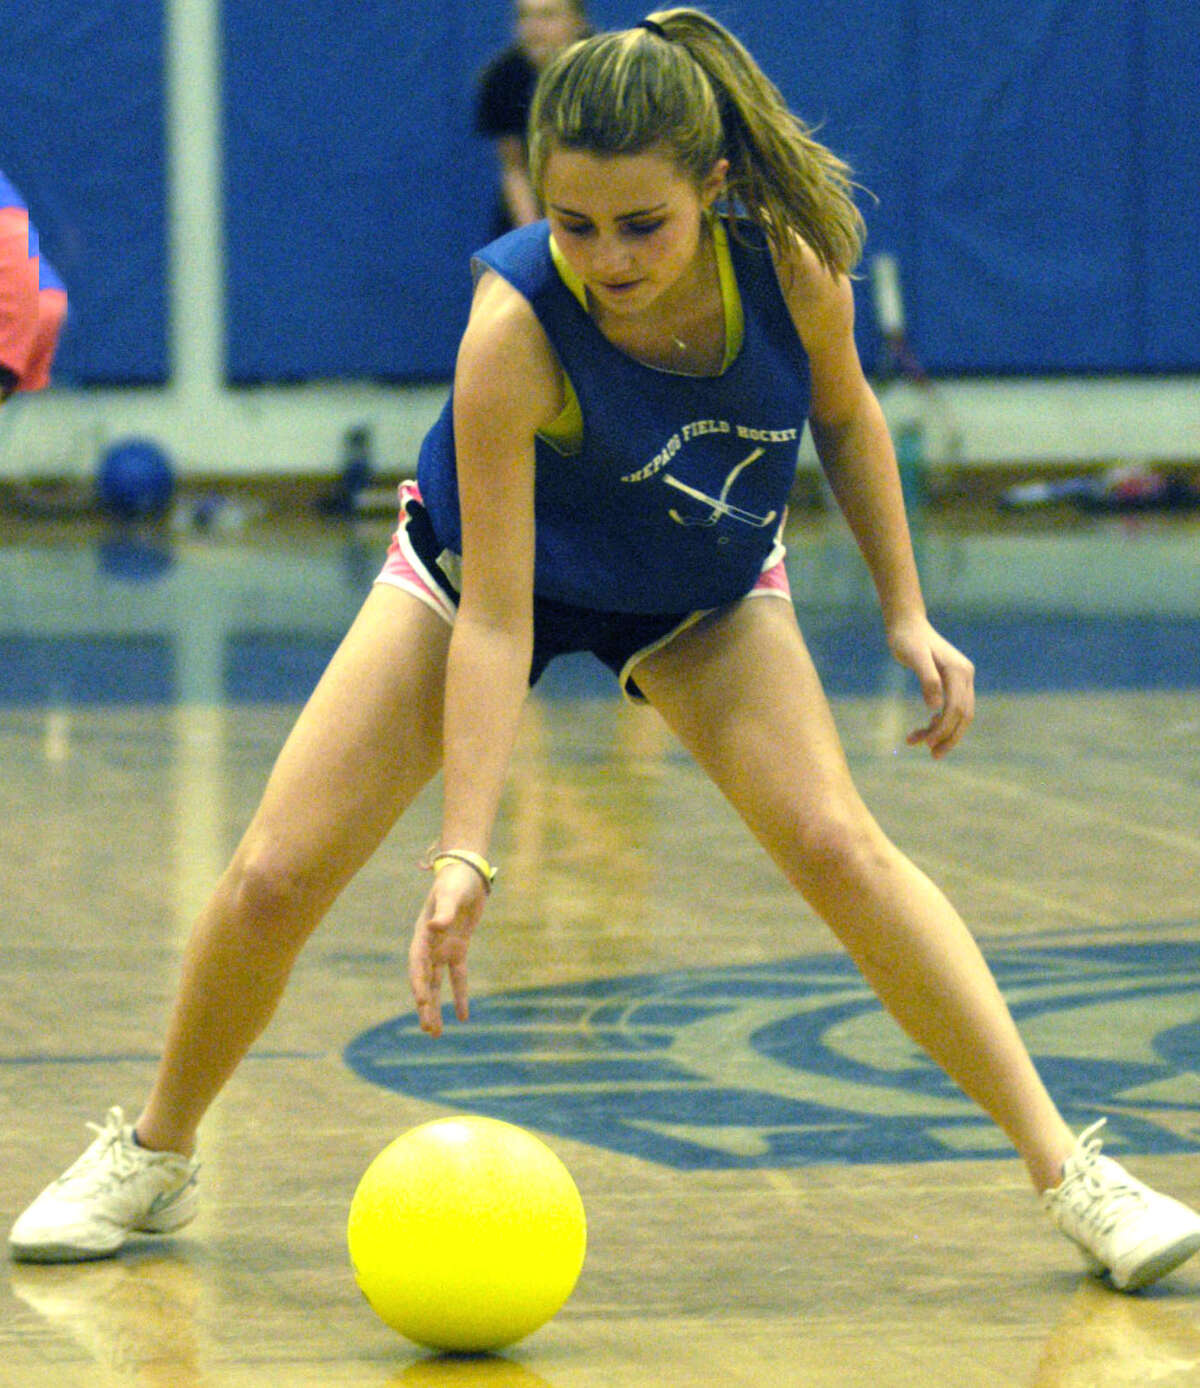 Molly Mercier of the Spartans engages in an agility drill for Shepaug Valley High School girls' tennis. April 2013